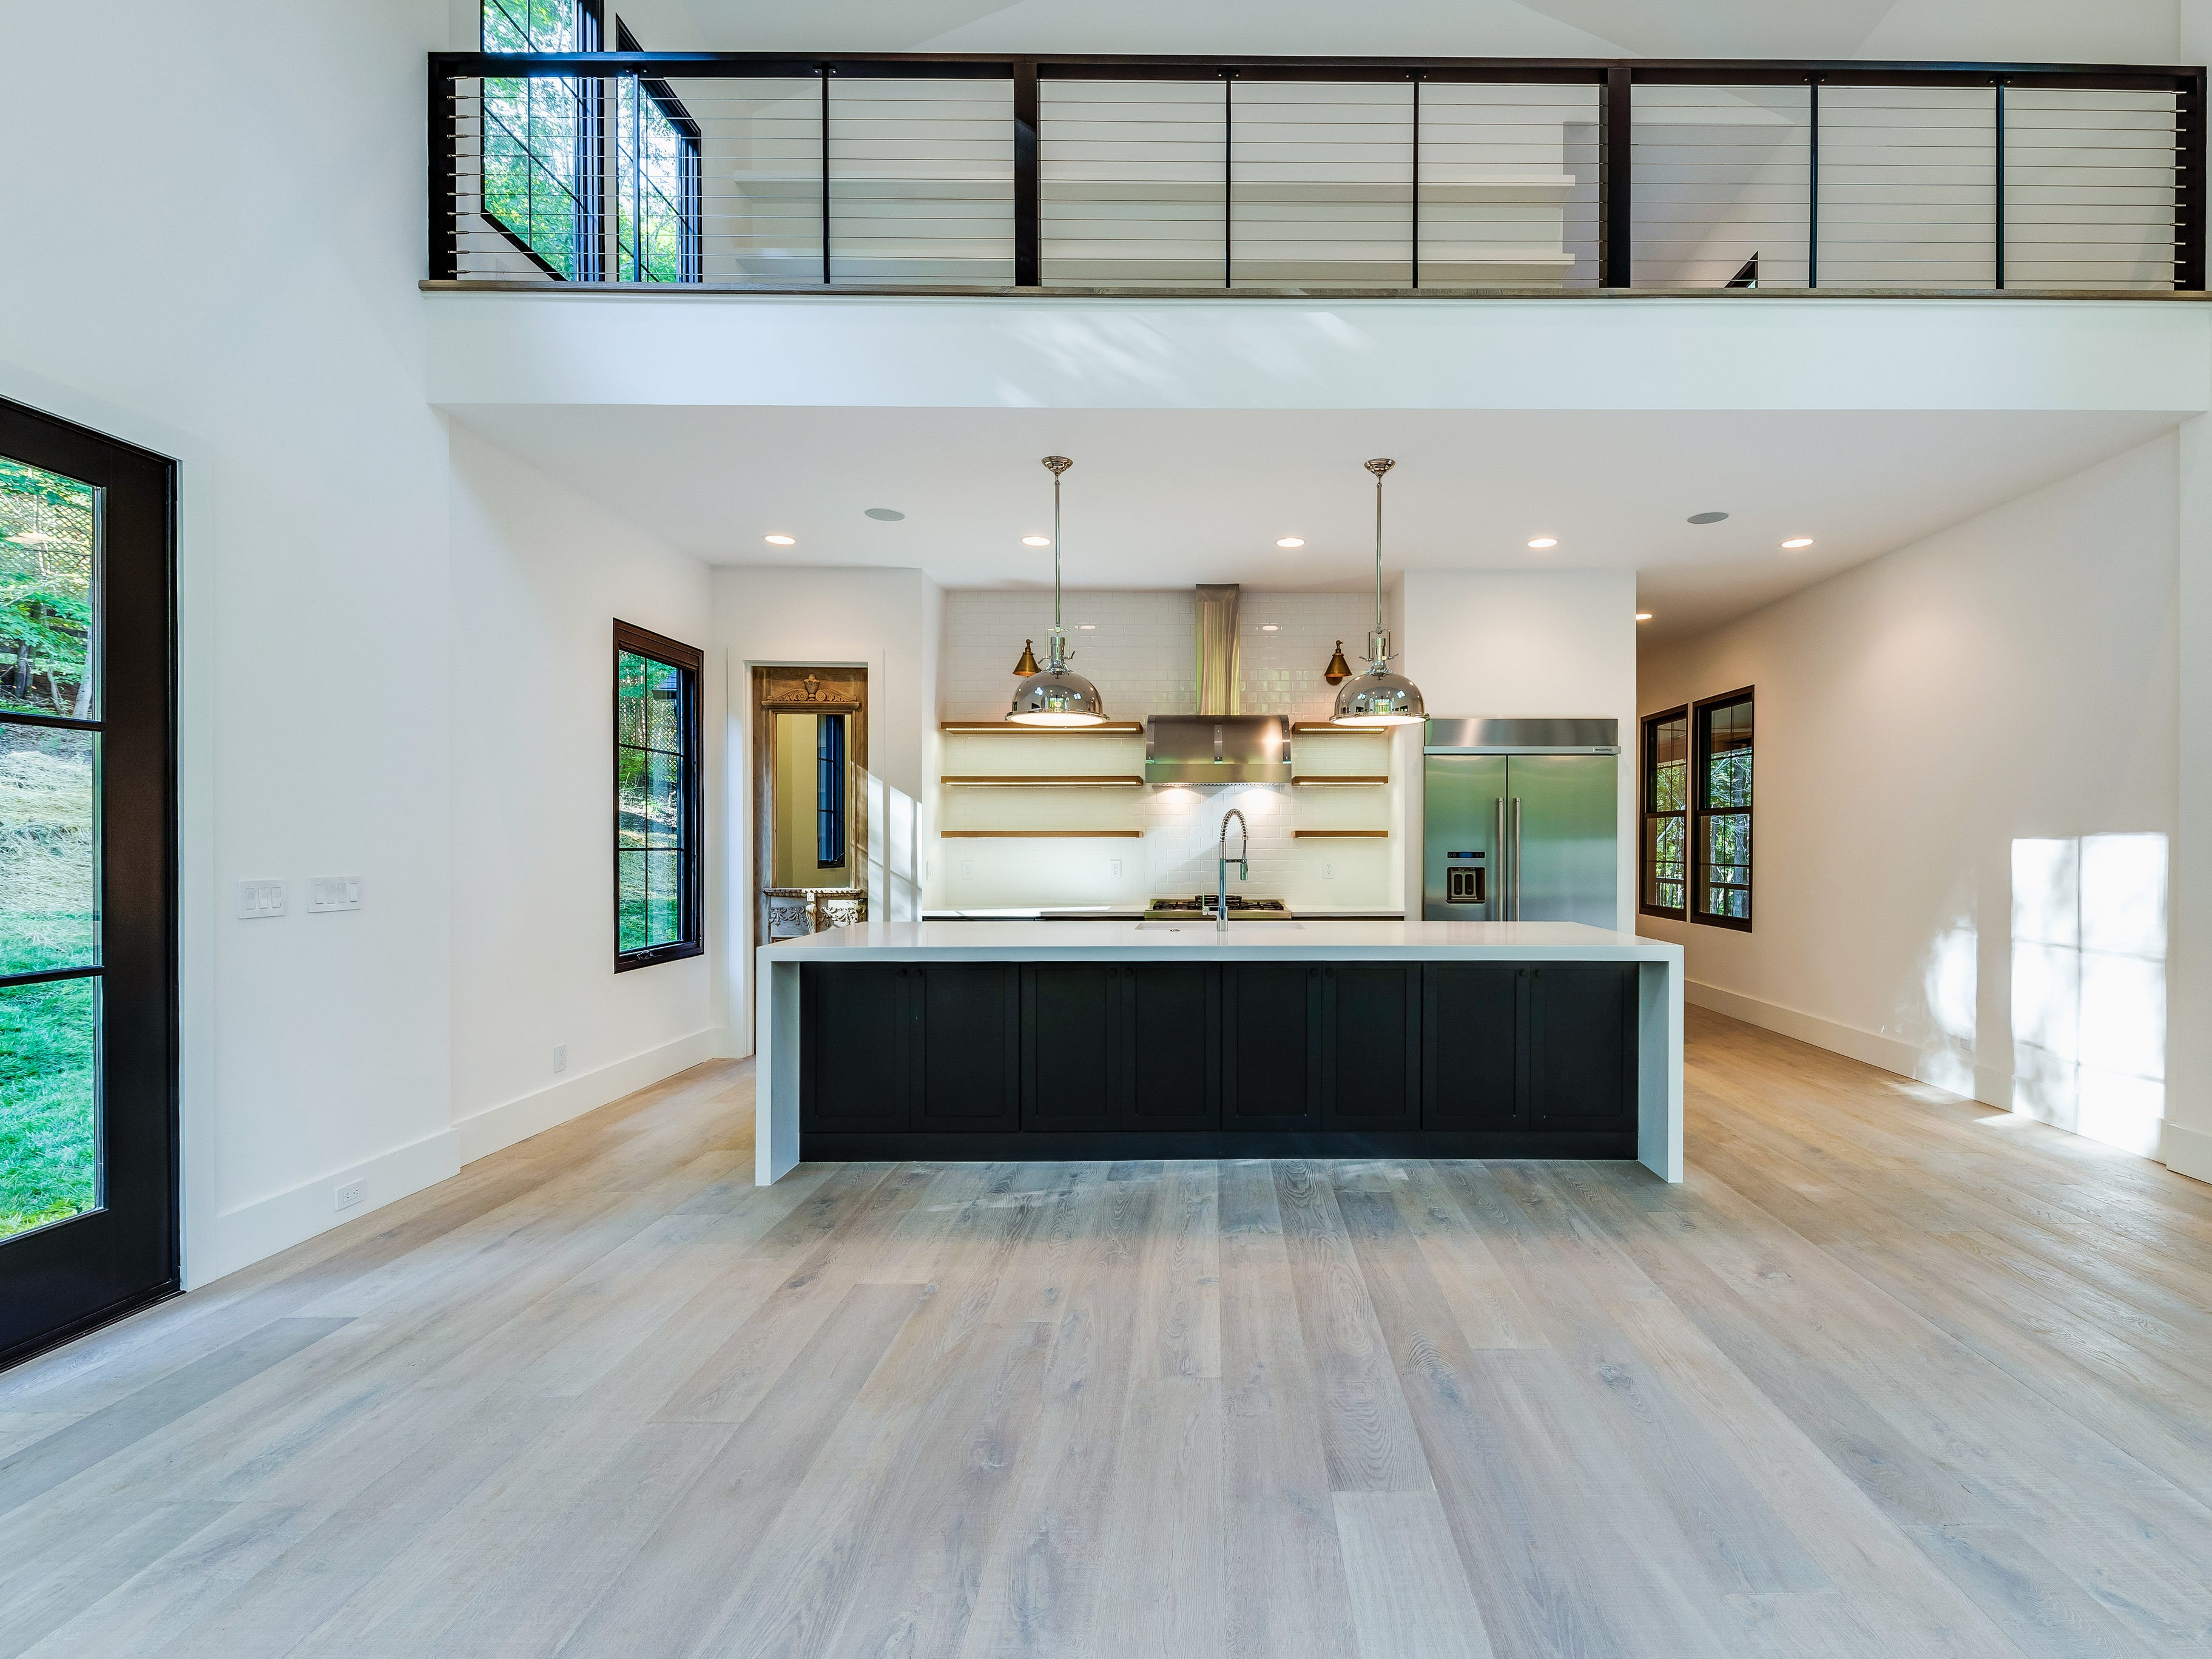 The kitchen in this farmhouse, built by Carbine and Associates, opens up to a massive living space and is topped with a loft area.